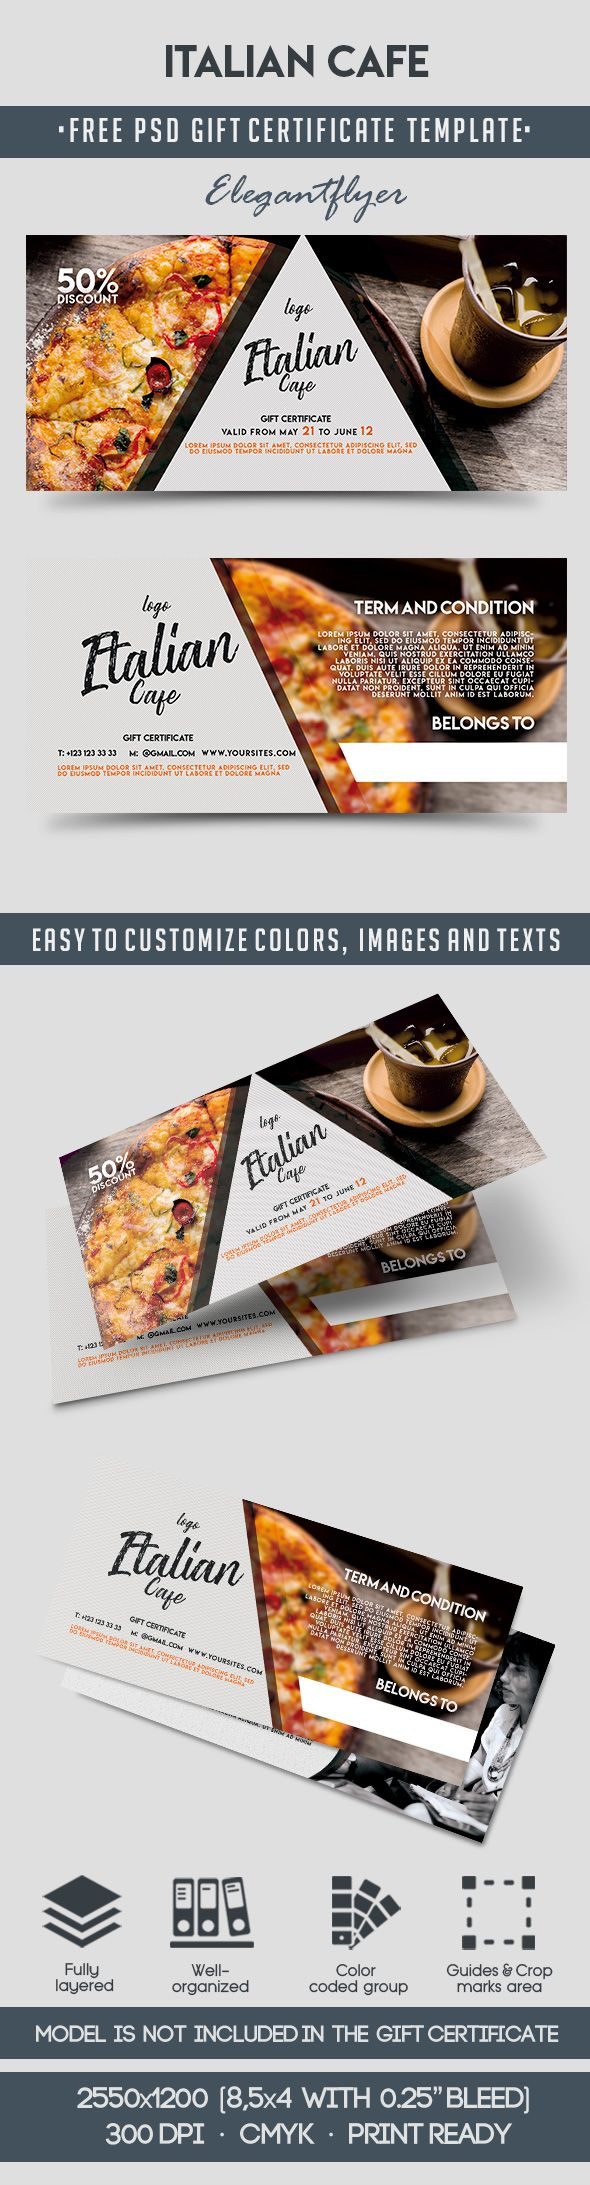 Italian Cafe – Free Gift Certificate PSD Template